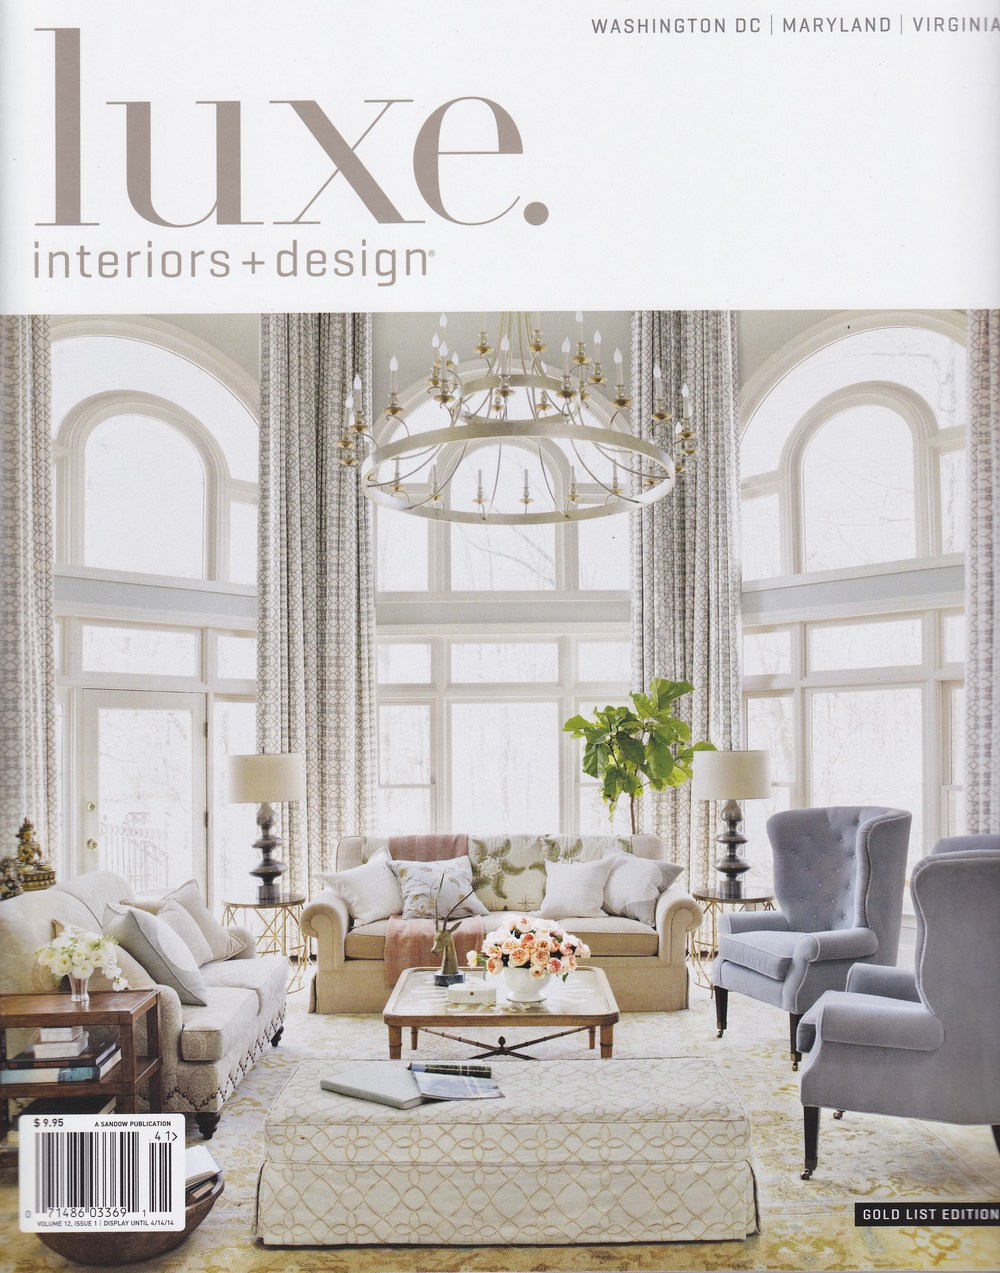 luxe interiors design phoenix handcraft - Luxe Interiors And Design Magazine